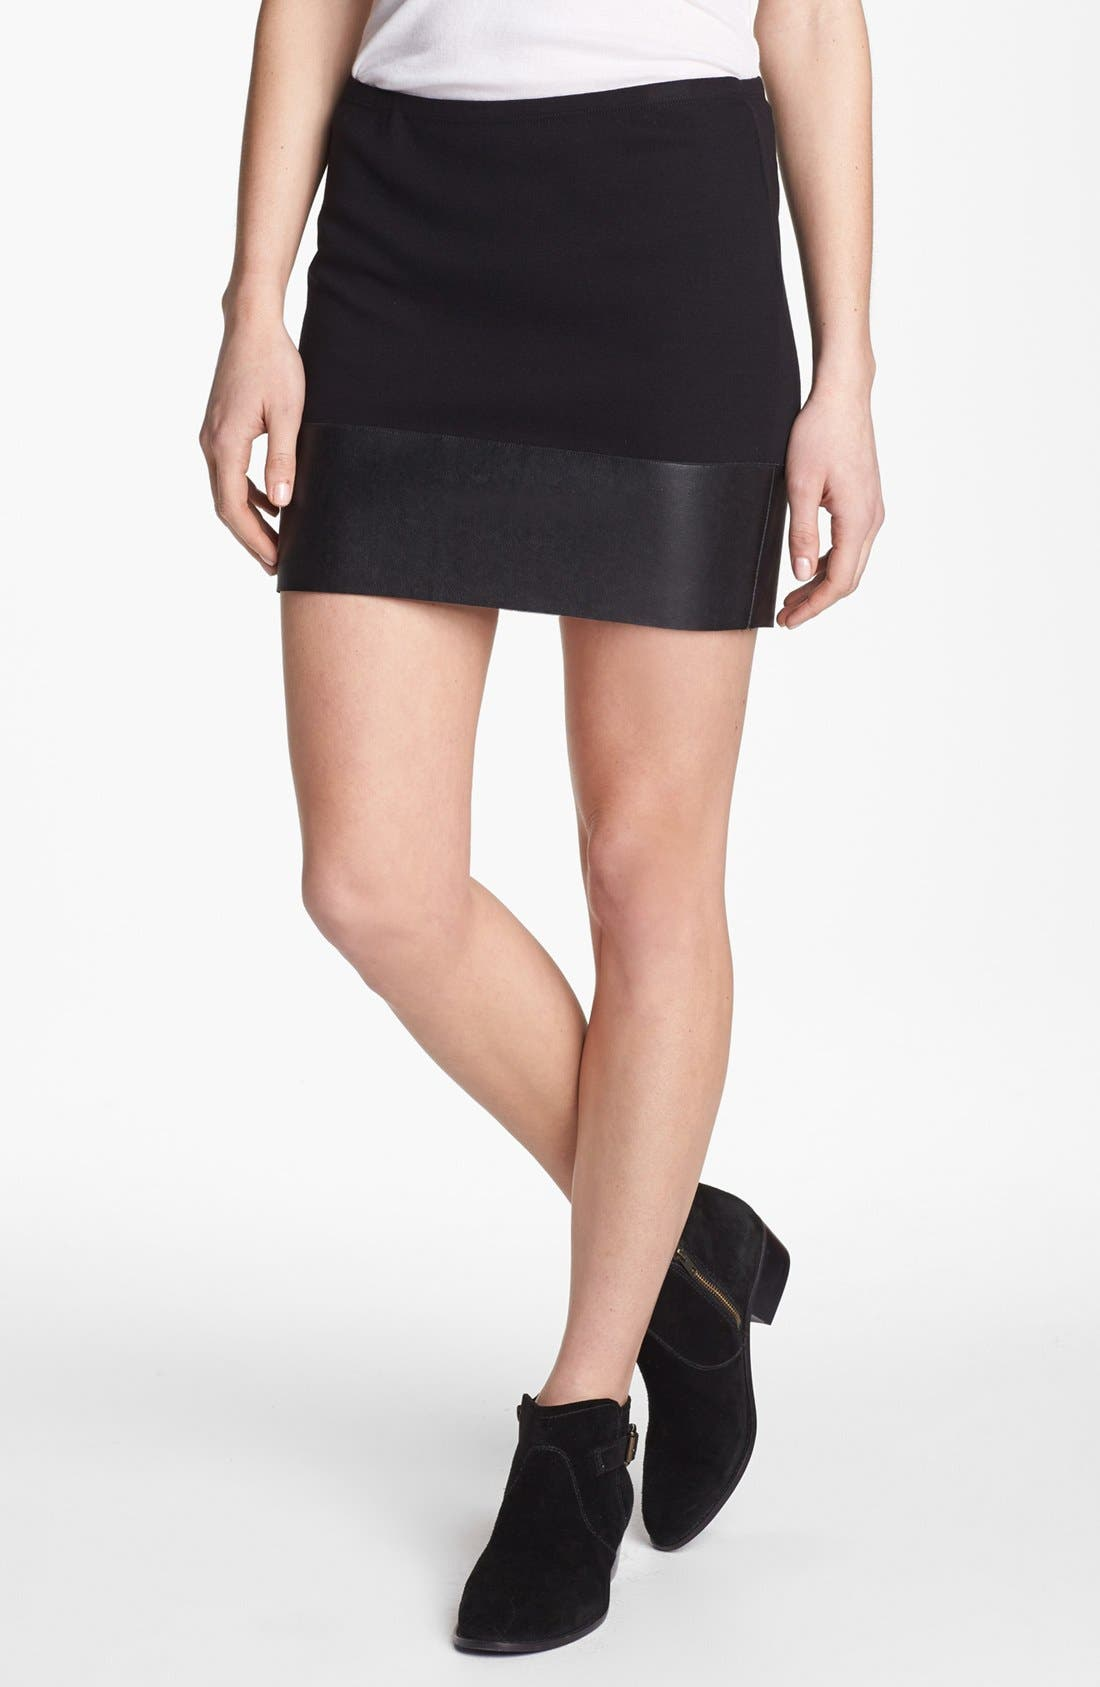 Alternate Image 1 Selected - Bailey 44 'Mano a Mano' Faux Leather Trim Miniskirt